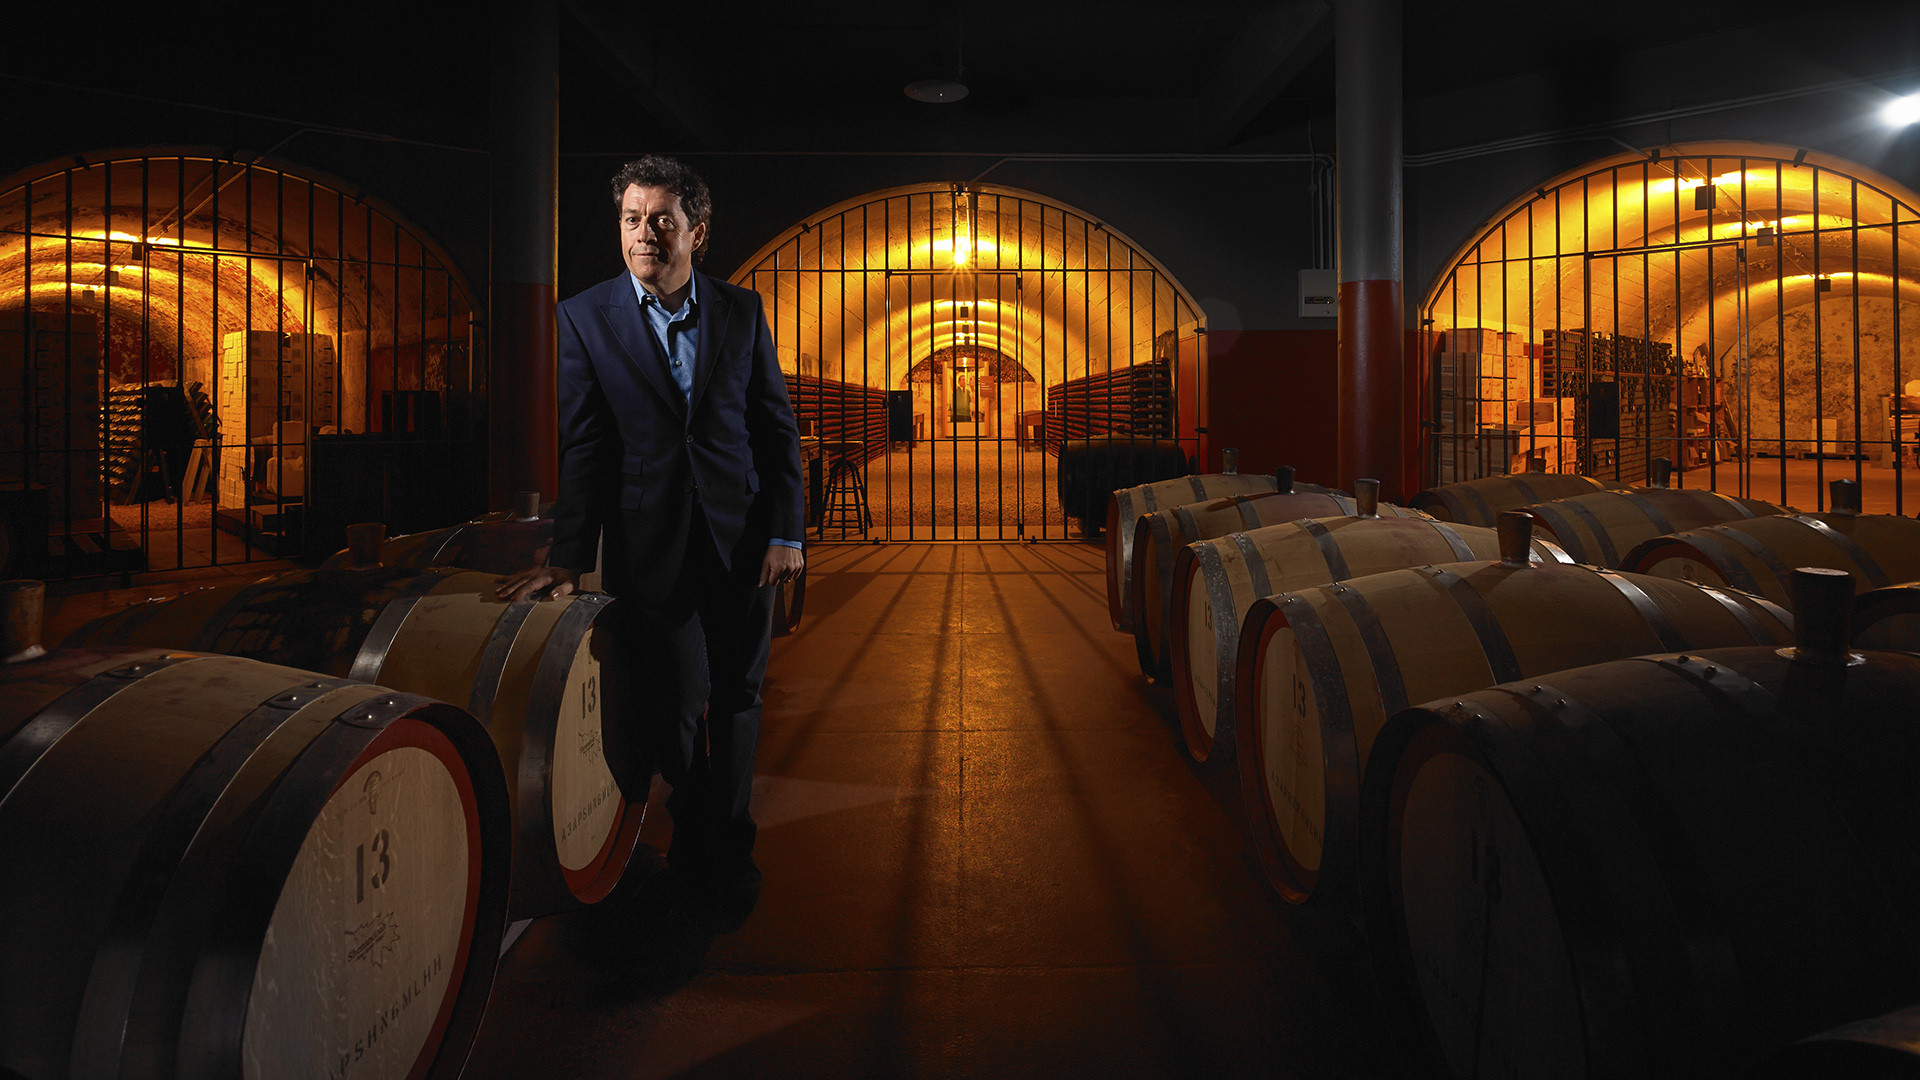 Peter Gago, chief winemaker at Penfolds